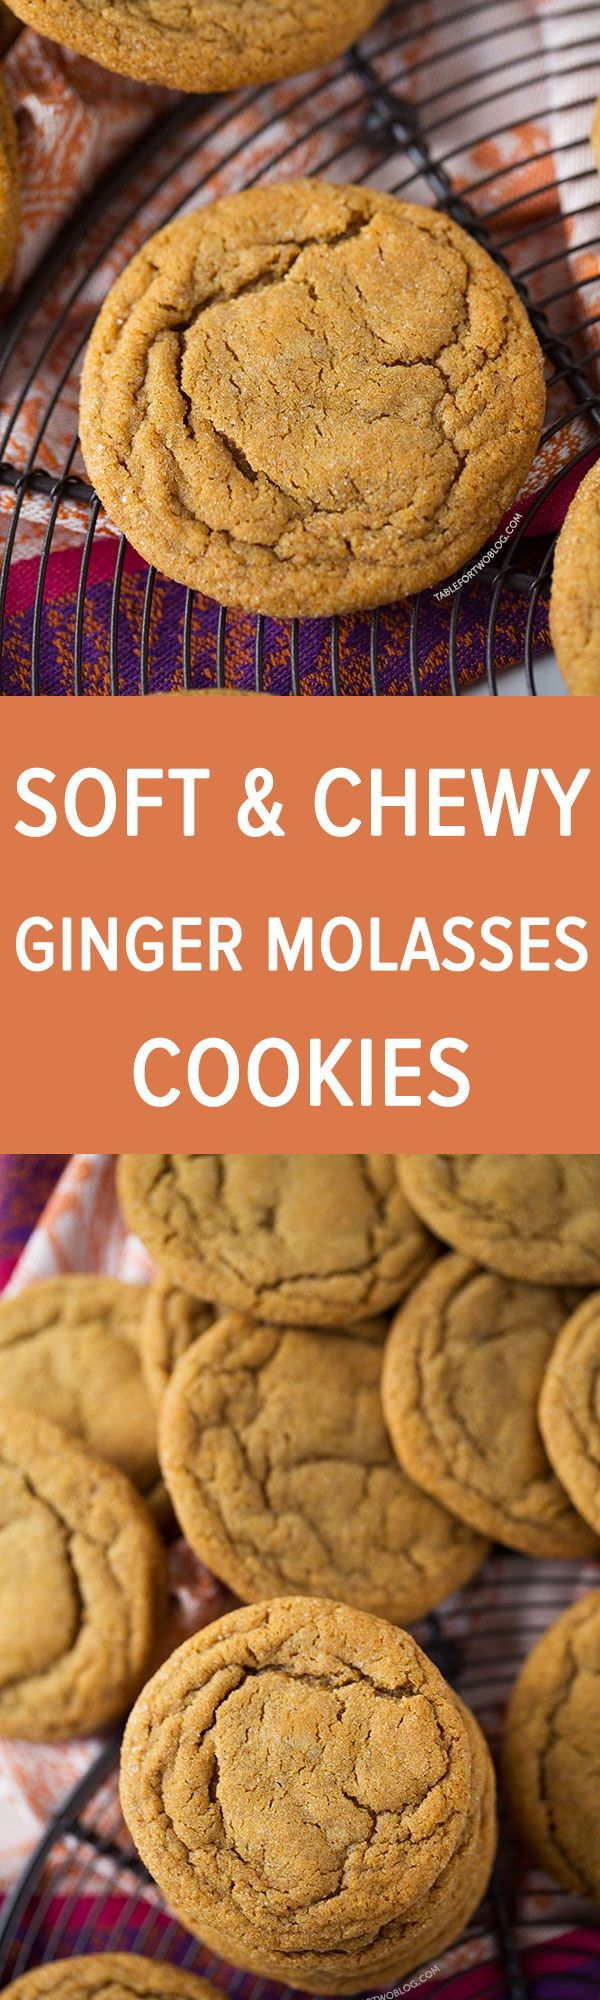 These soft and chewy ginger molasses cookies are guaranteed going to be the softest and chewiest cookies you'll ever make!